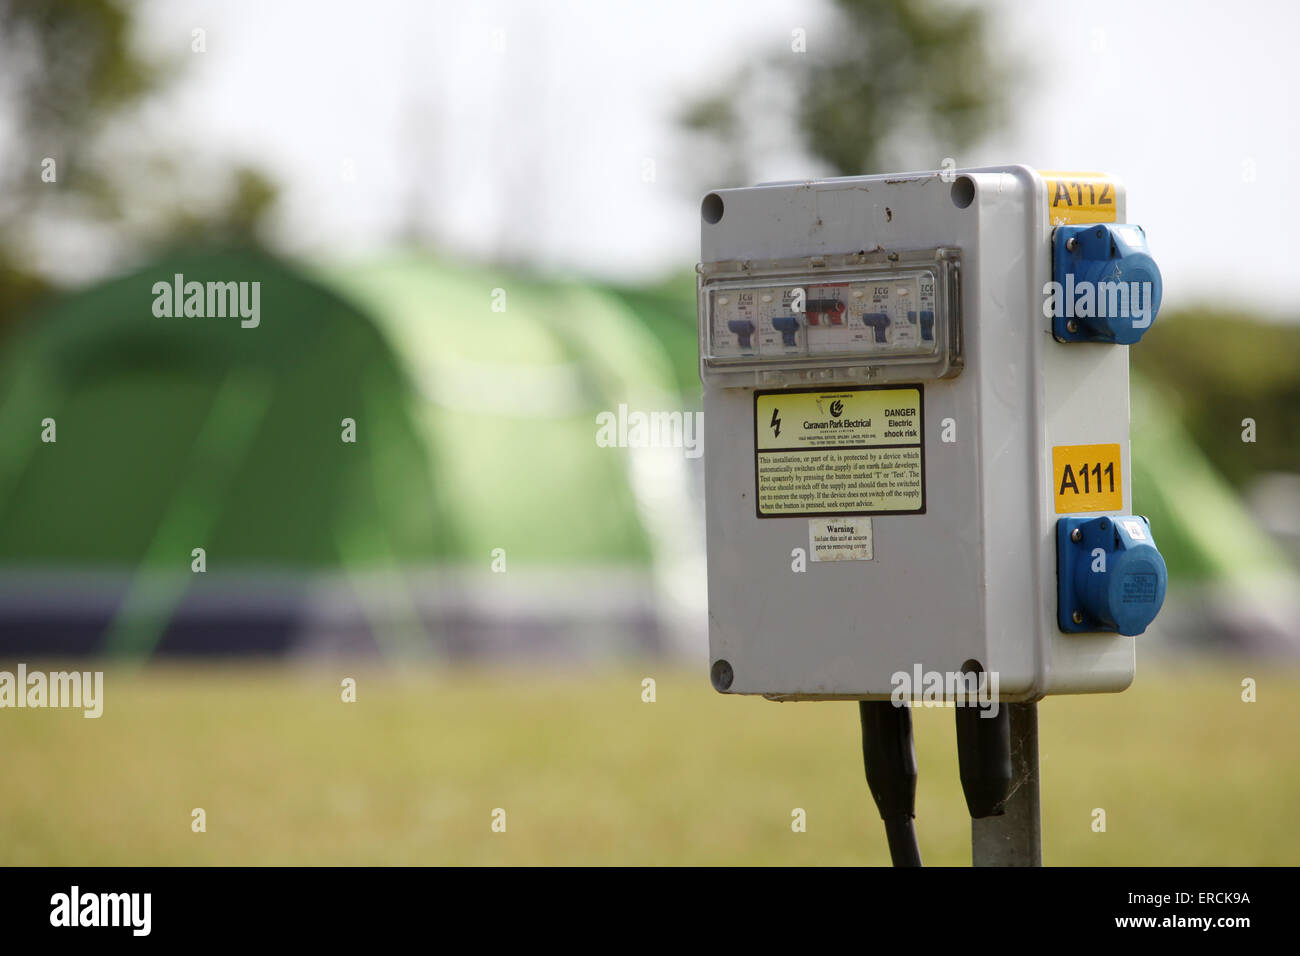 Electric hook up power point on a c&site in the UK used by caravans and tents & Electric hook up power point on a campsite in the UK used by ...